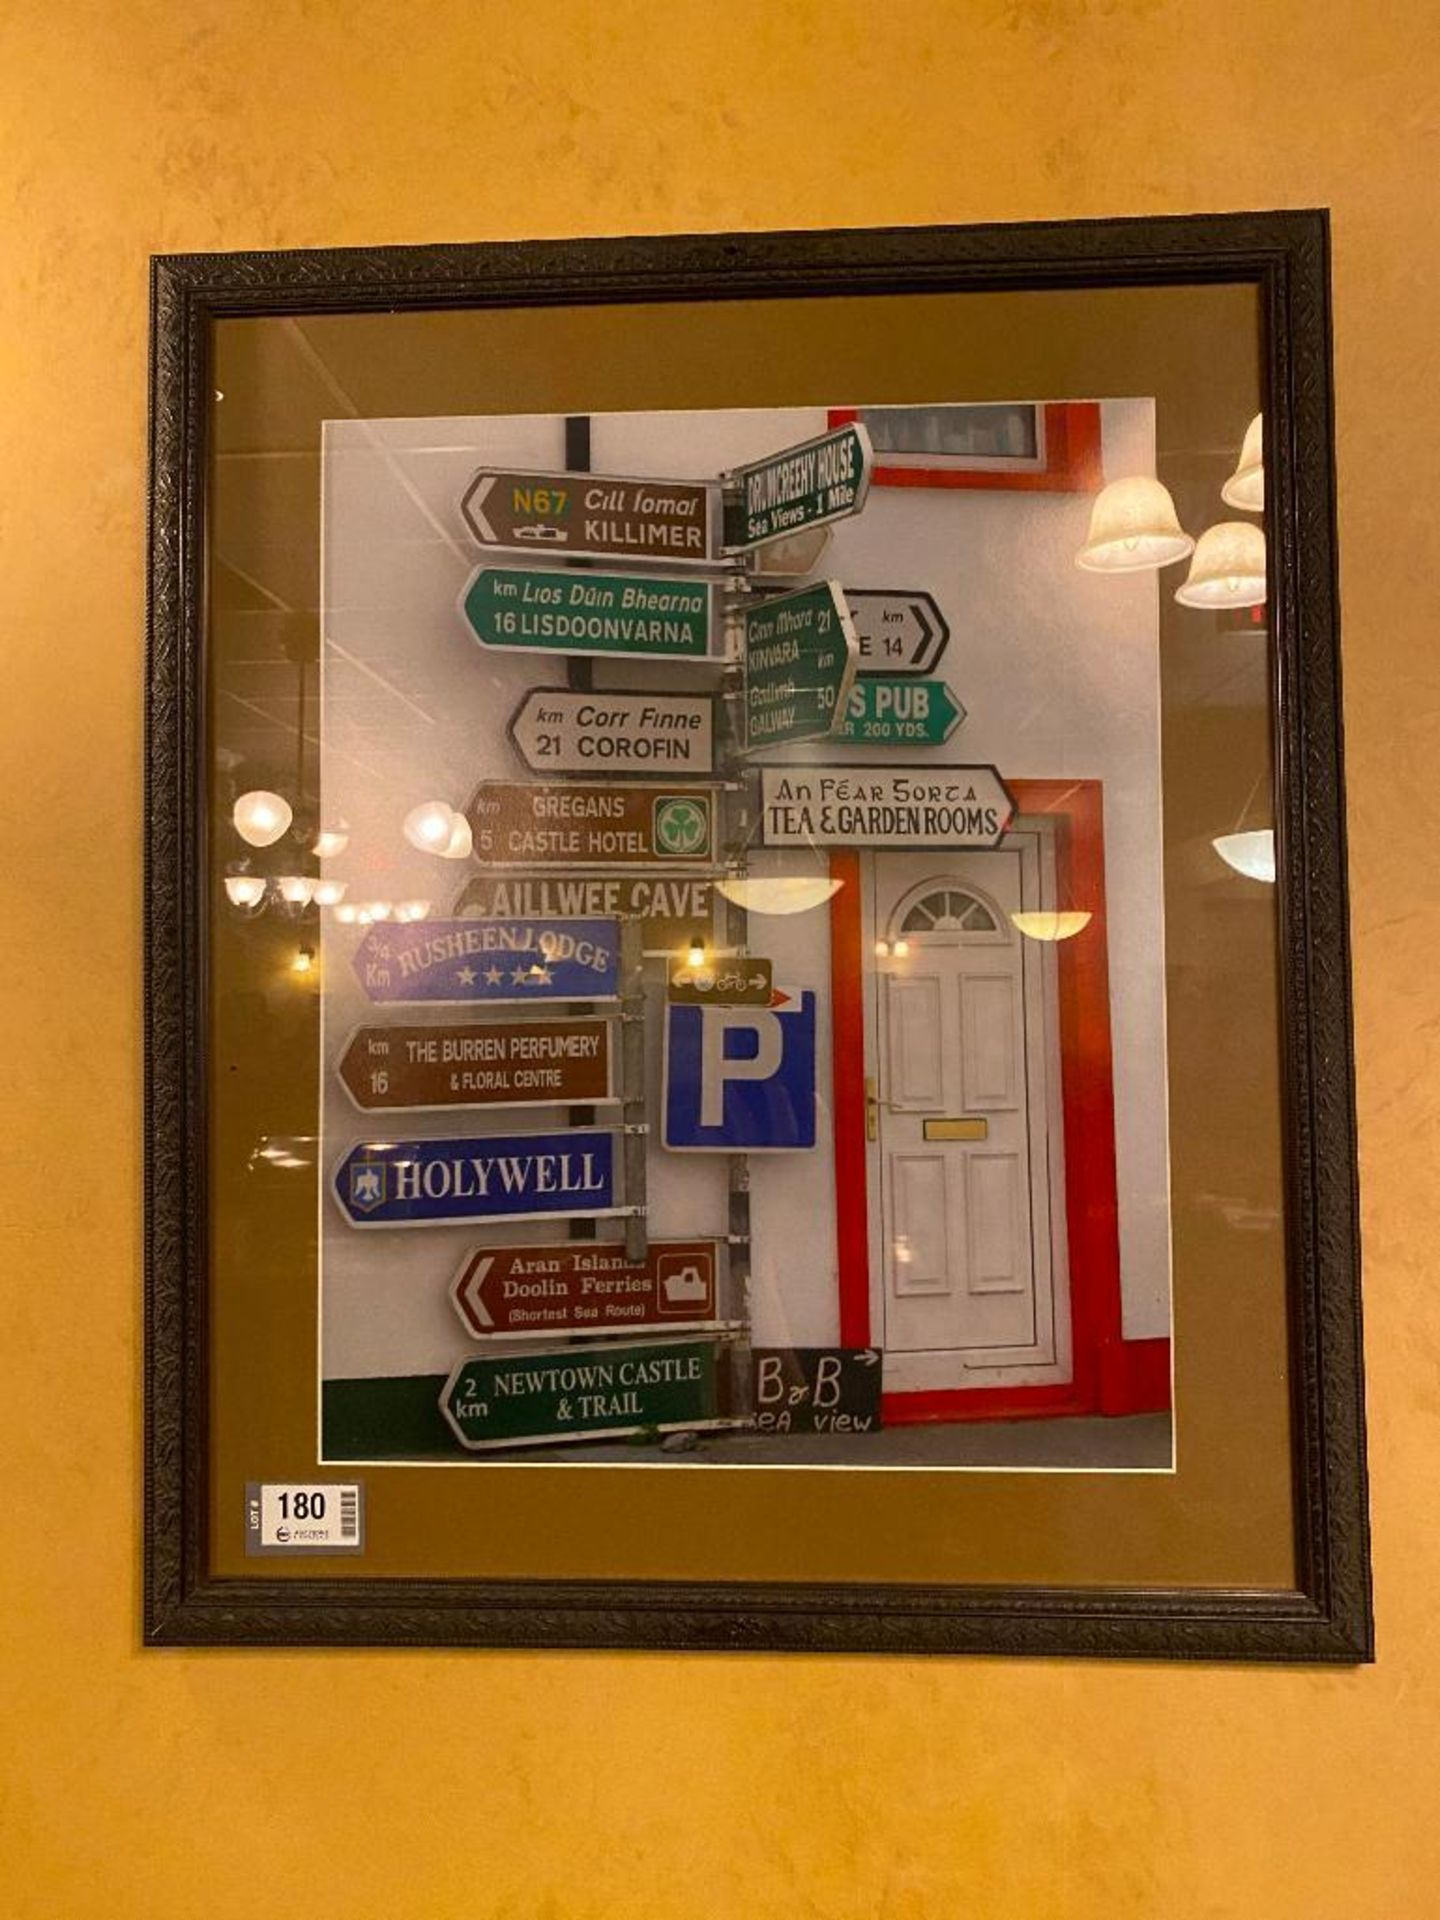 LOT OF (3) FRAMED MEMORABILIA PHOTOS & (1) PRIDE O'THE IRISH PLAQUE - NOTE: REQUIRES REMOVAL FROM WA - Image 2 of 4